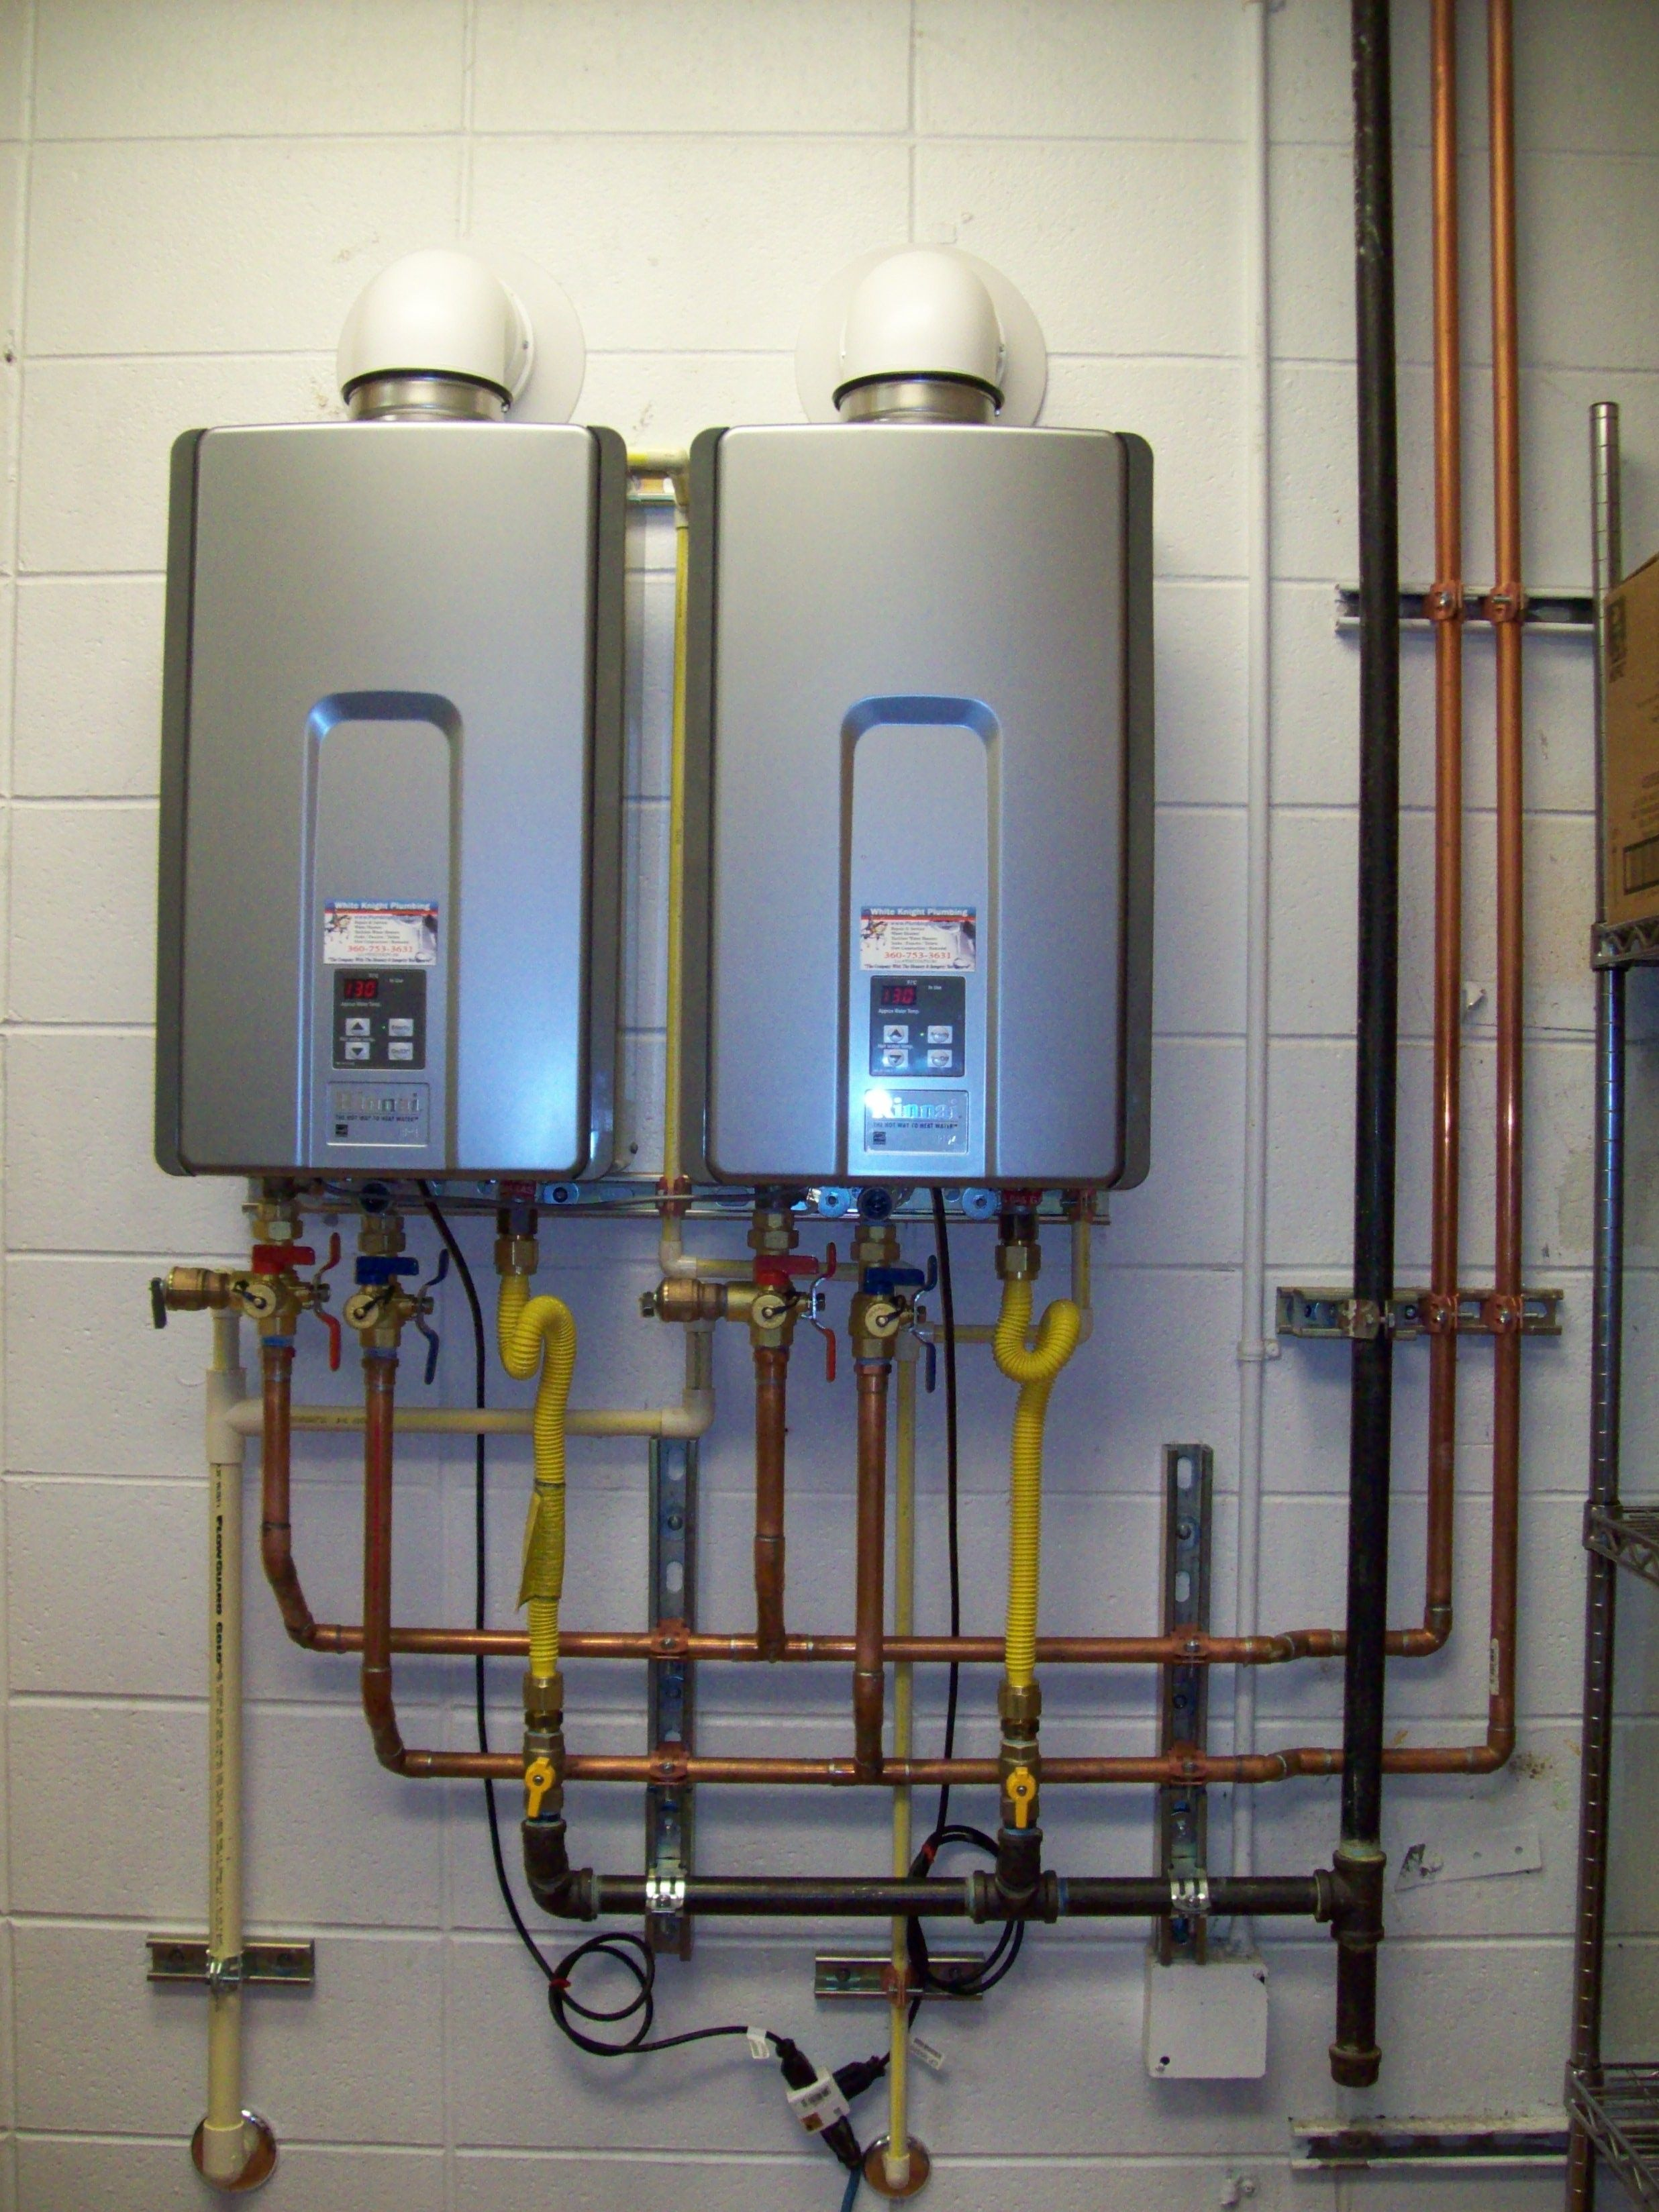 Pros and cons of gas tankless water heaters - Rinnai Commercial Tankless Water Heater Installation With Ez Connect Kit